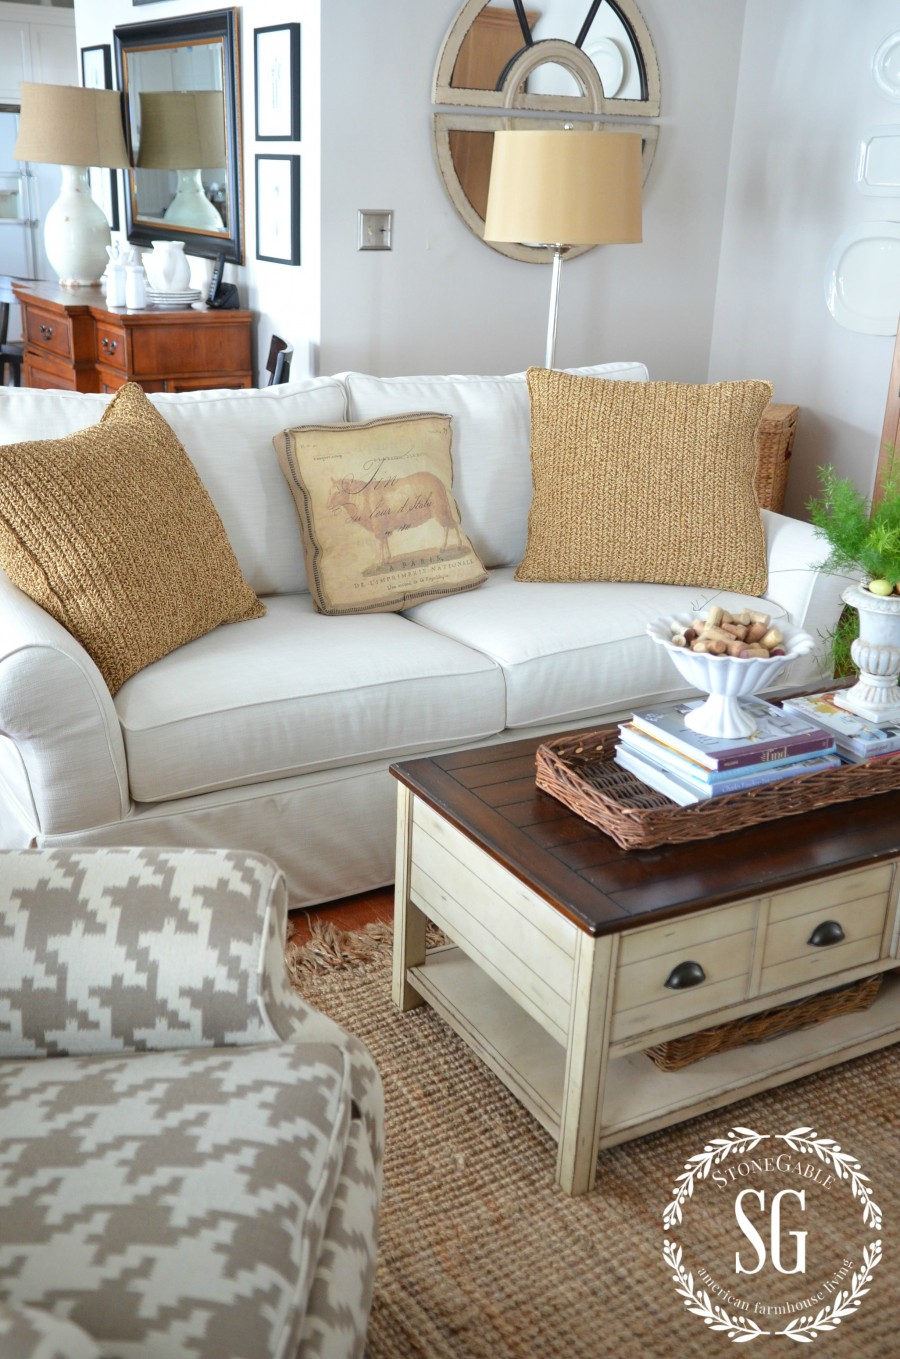 6 Must Know Tips For Ing A Sofa And New Family Room